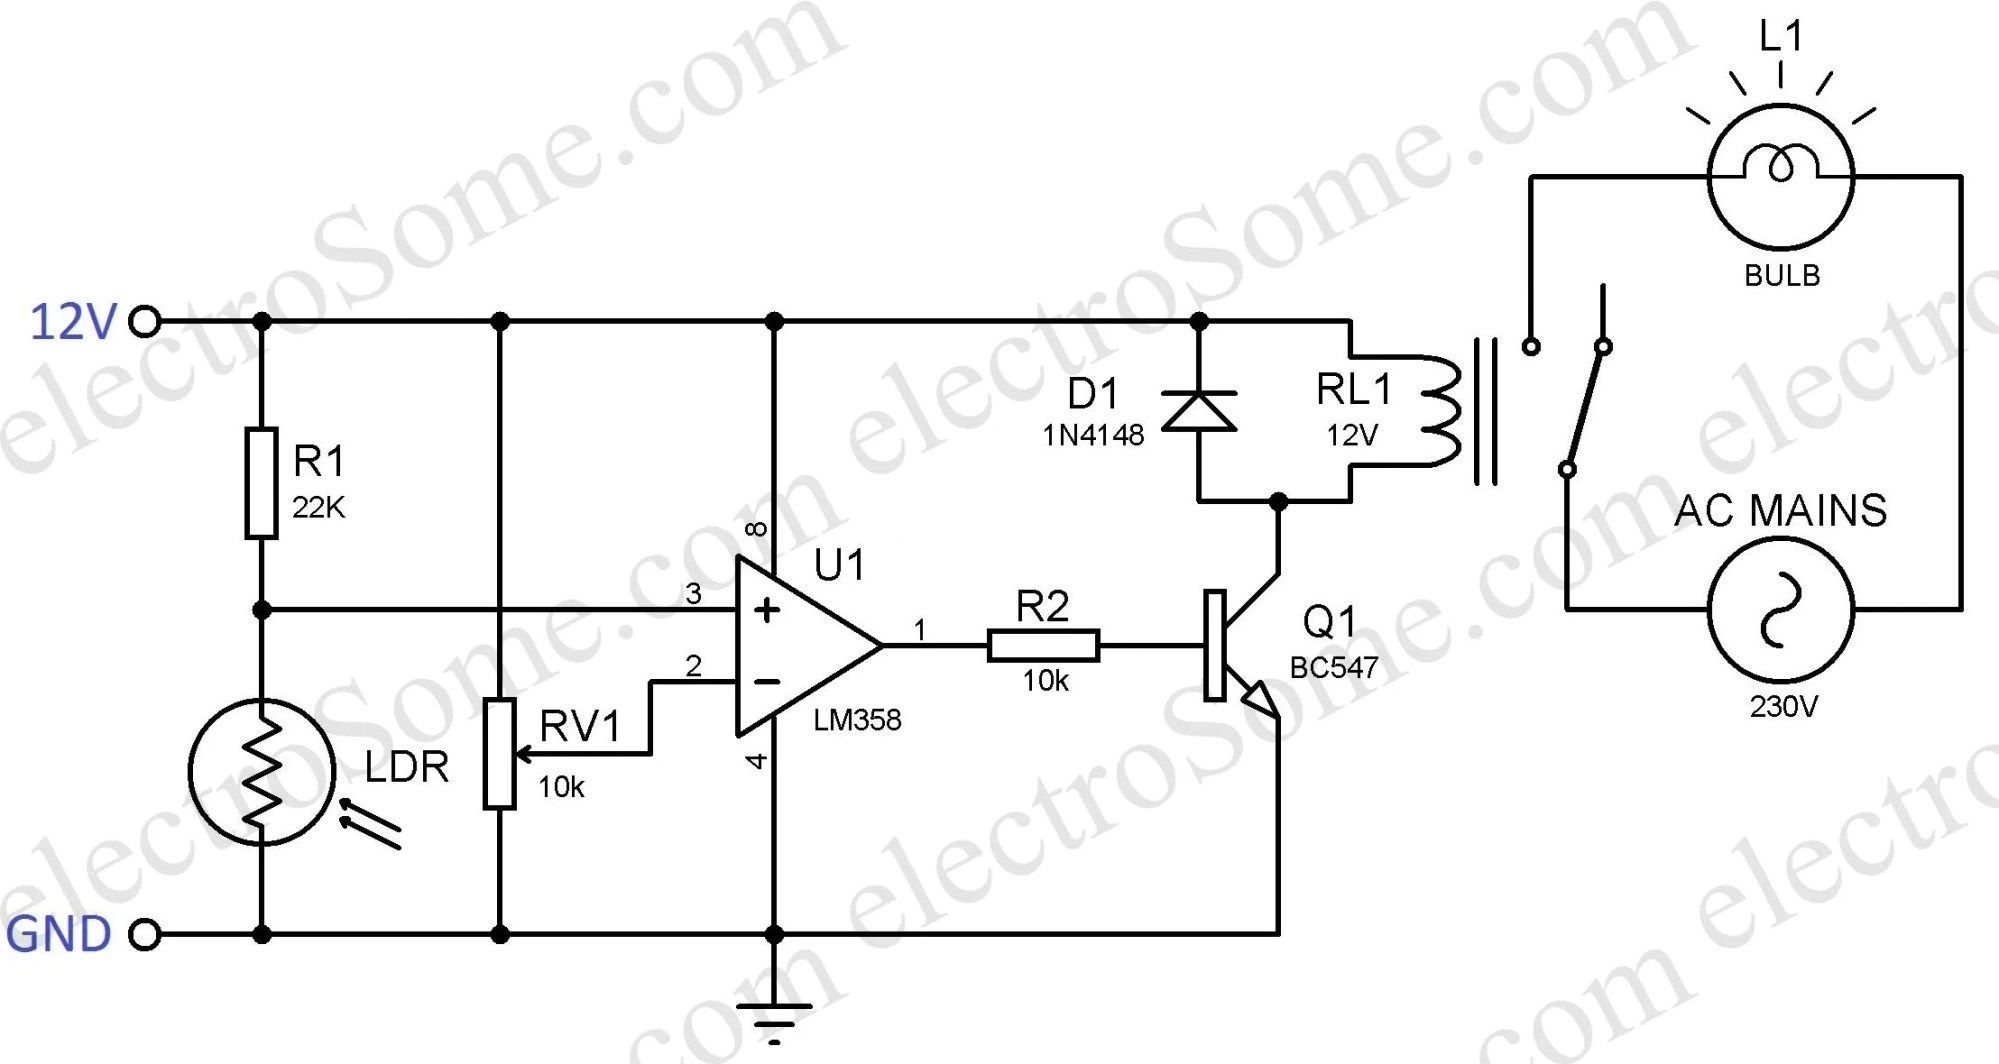 hight resolution of automatic night lamp using ldr automatic night lamp circuit diagram